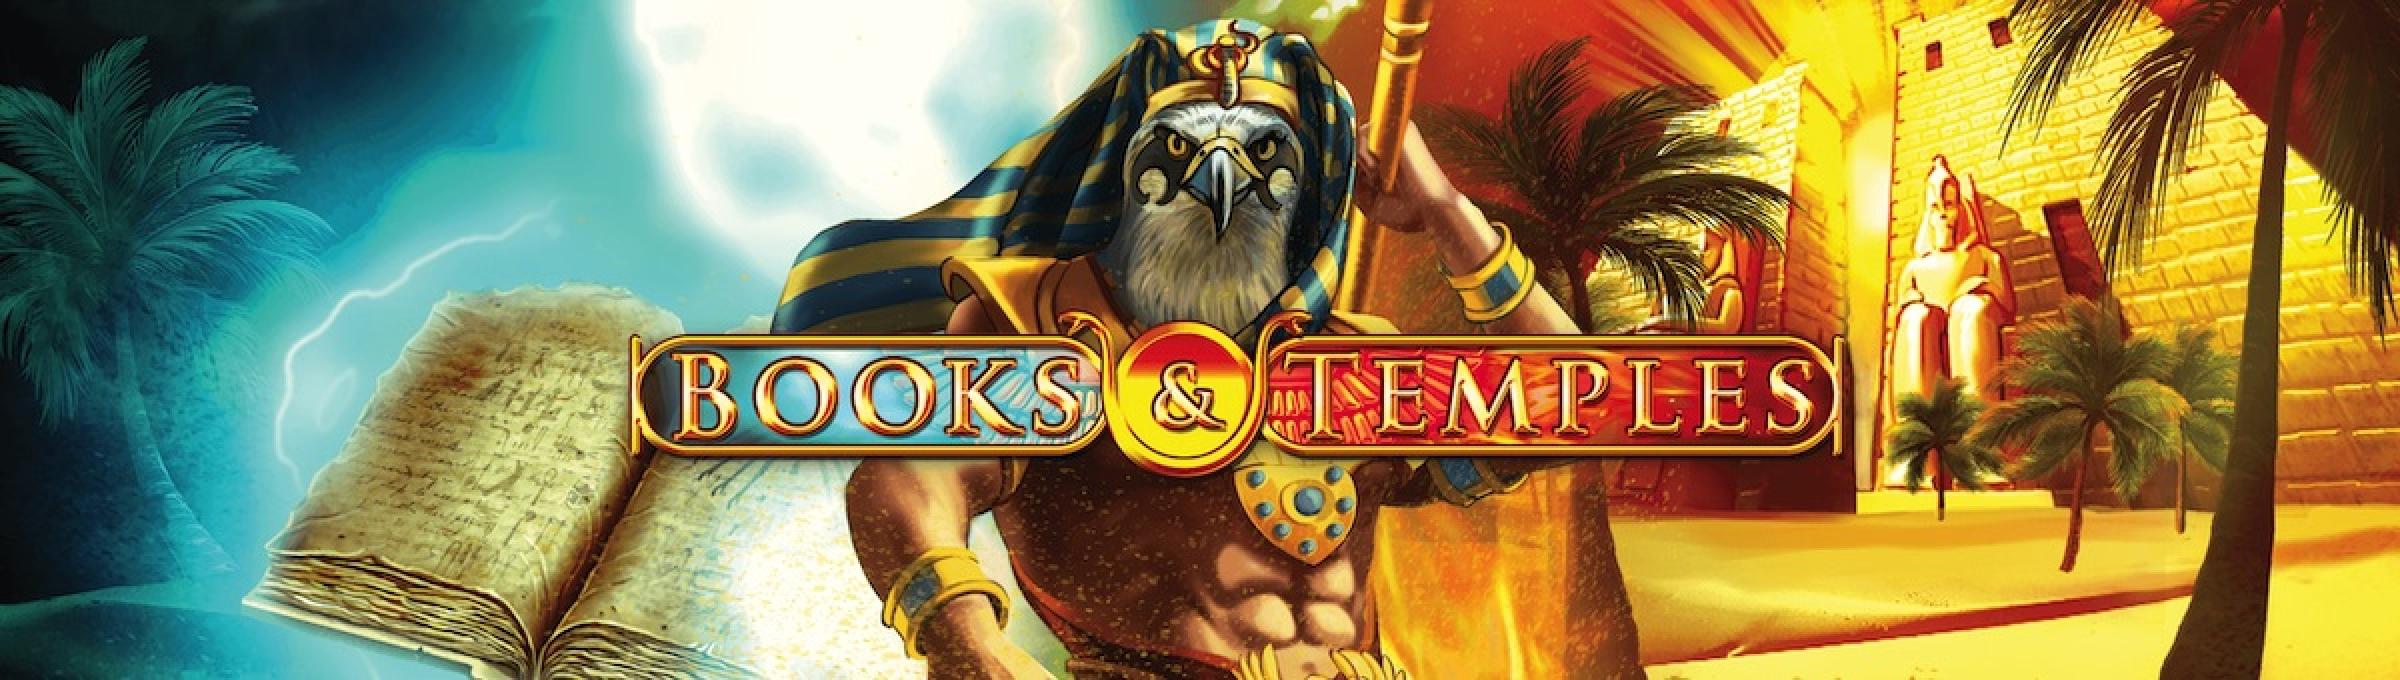 The Books and Temples Online Slot Demo Game by Gamomat